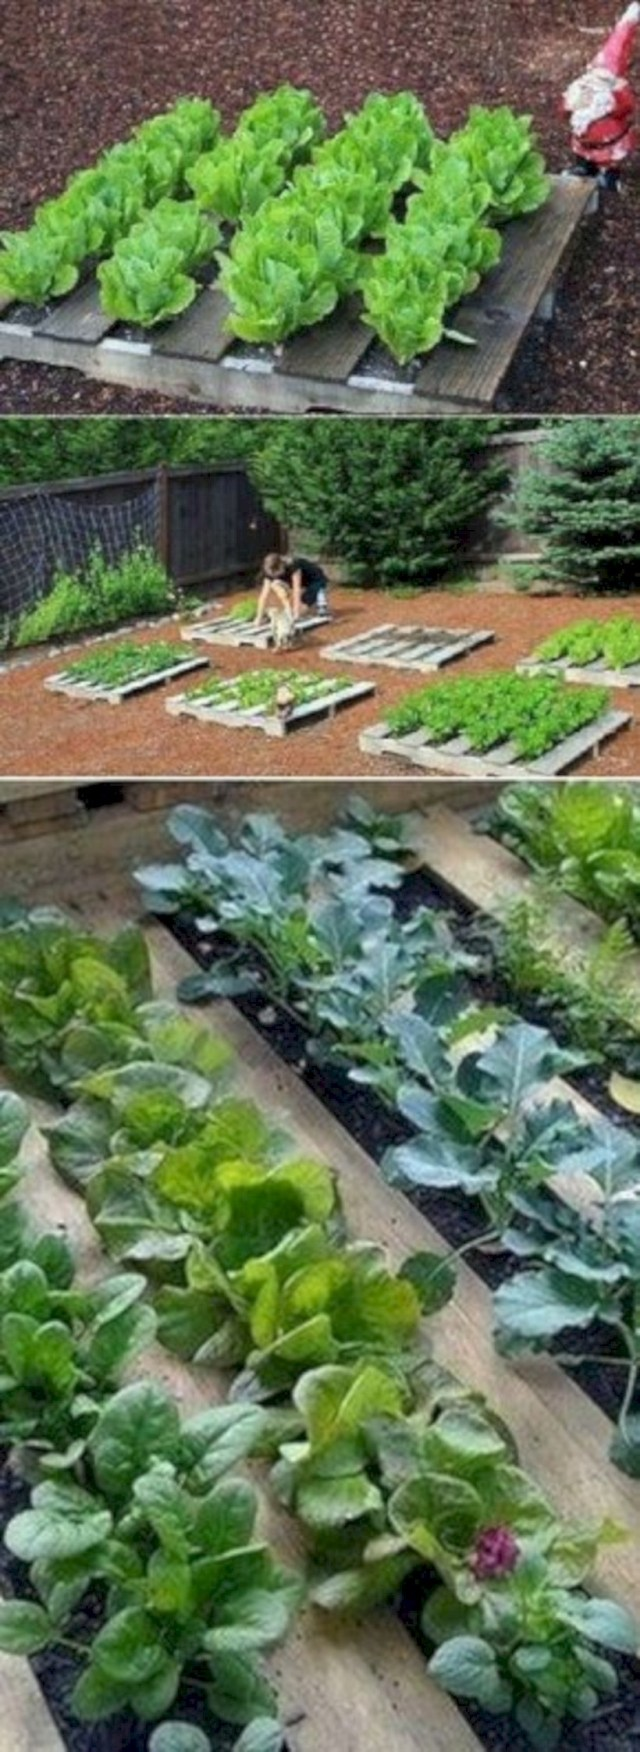 Wooden pallets and little vegetables garden